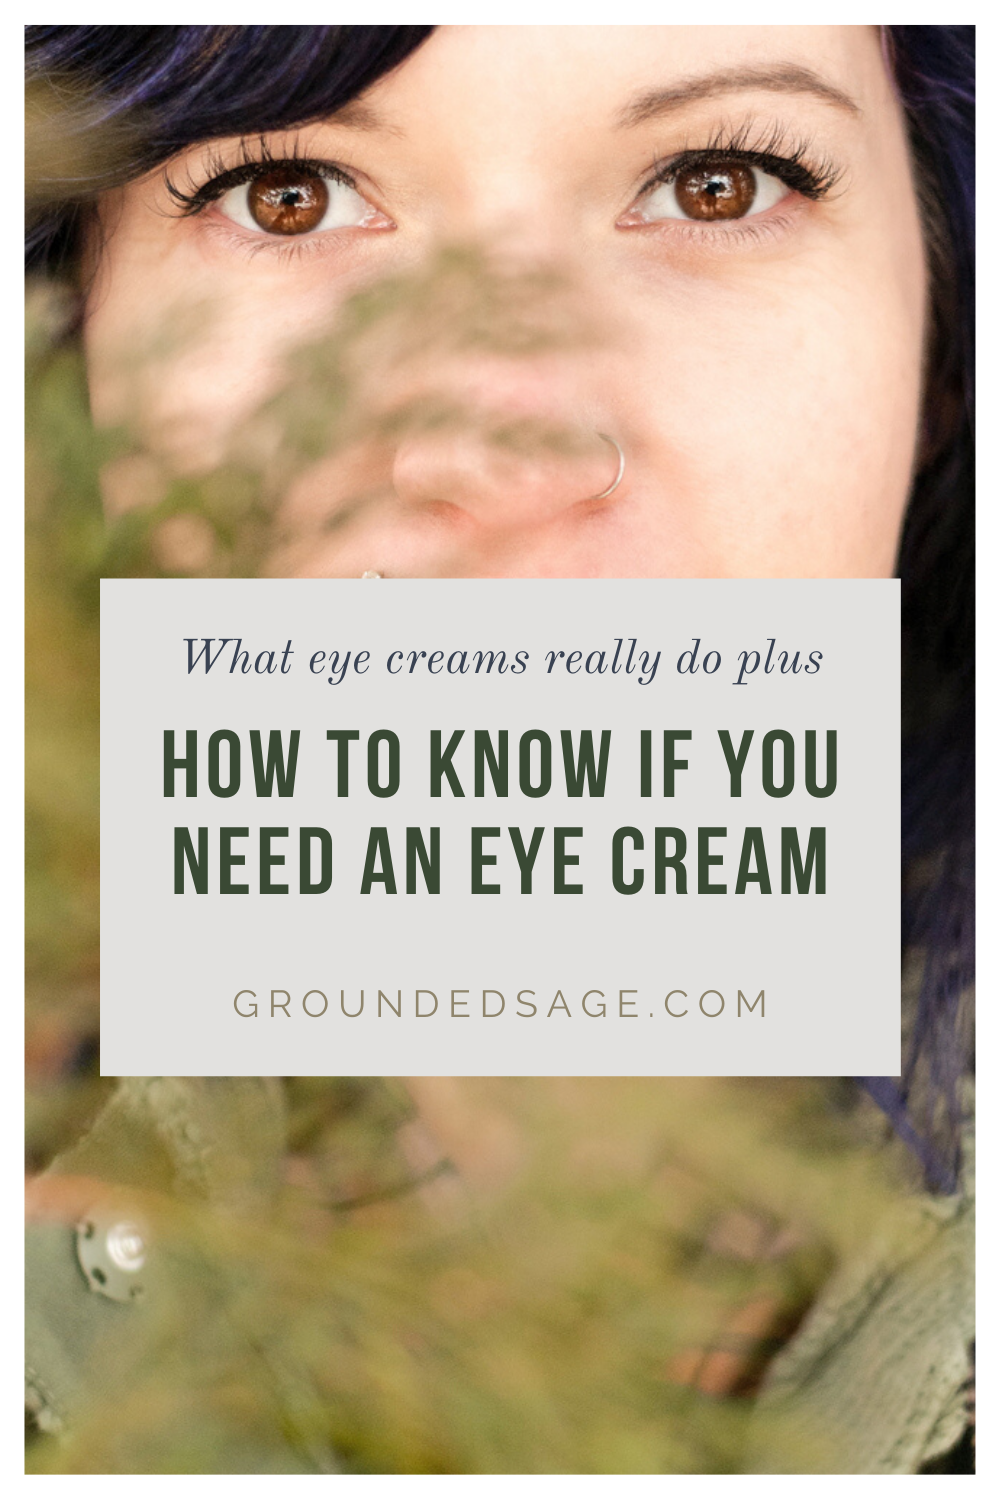 What do eye creams do plus how to know if you need an eye cream in your healthy skin care routine. Skincare basics for beginners and tips for keeping your beauty routine simple.